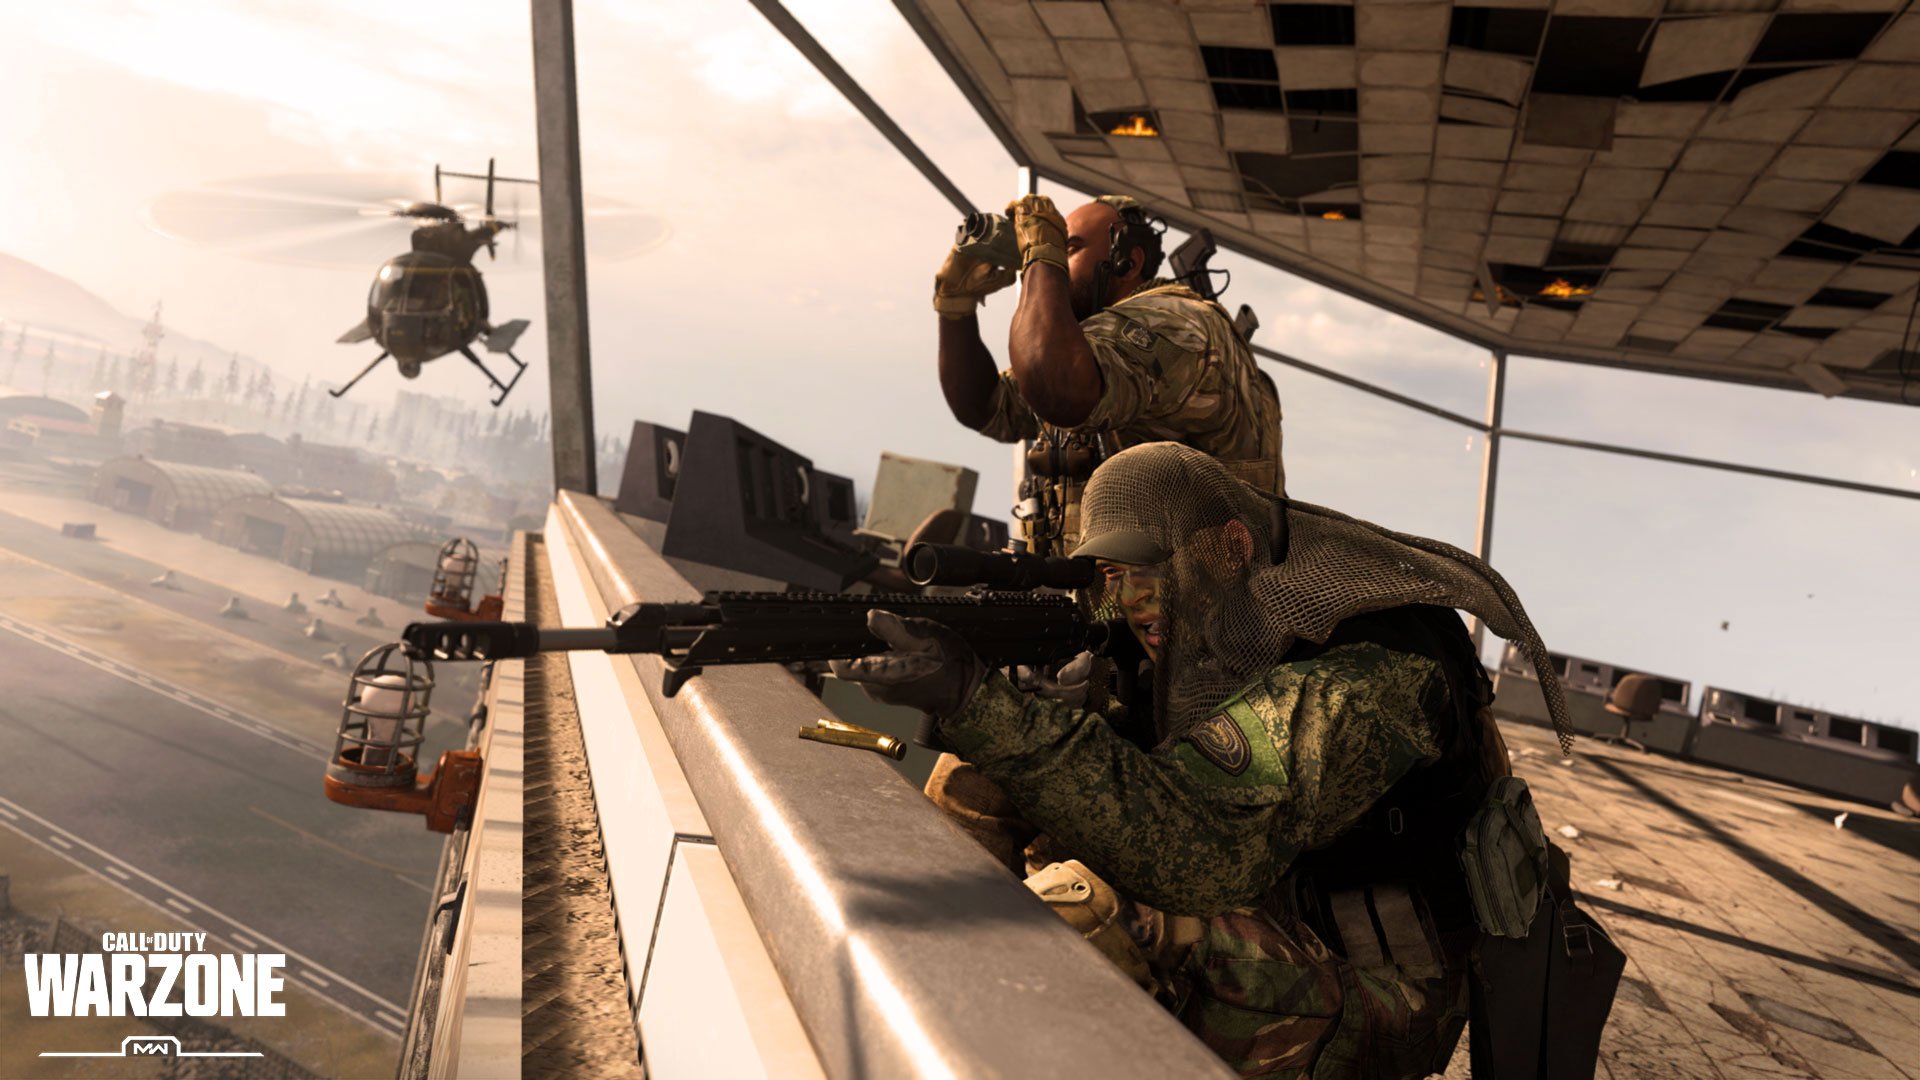 Free-to-Play Call of Duty®: Warzone is Live and Available for Everyone to Download NOW! - Image 7